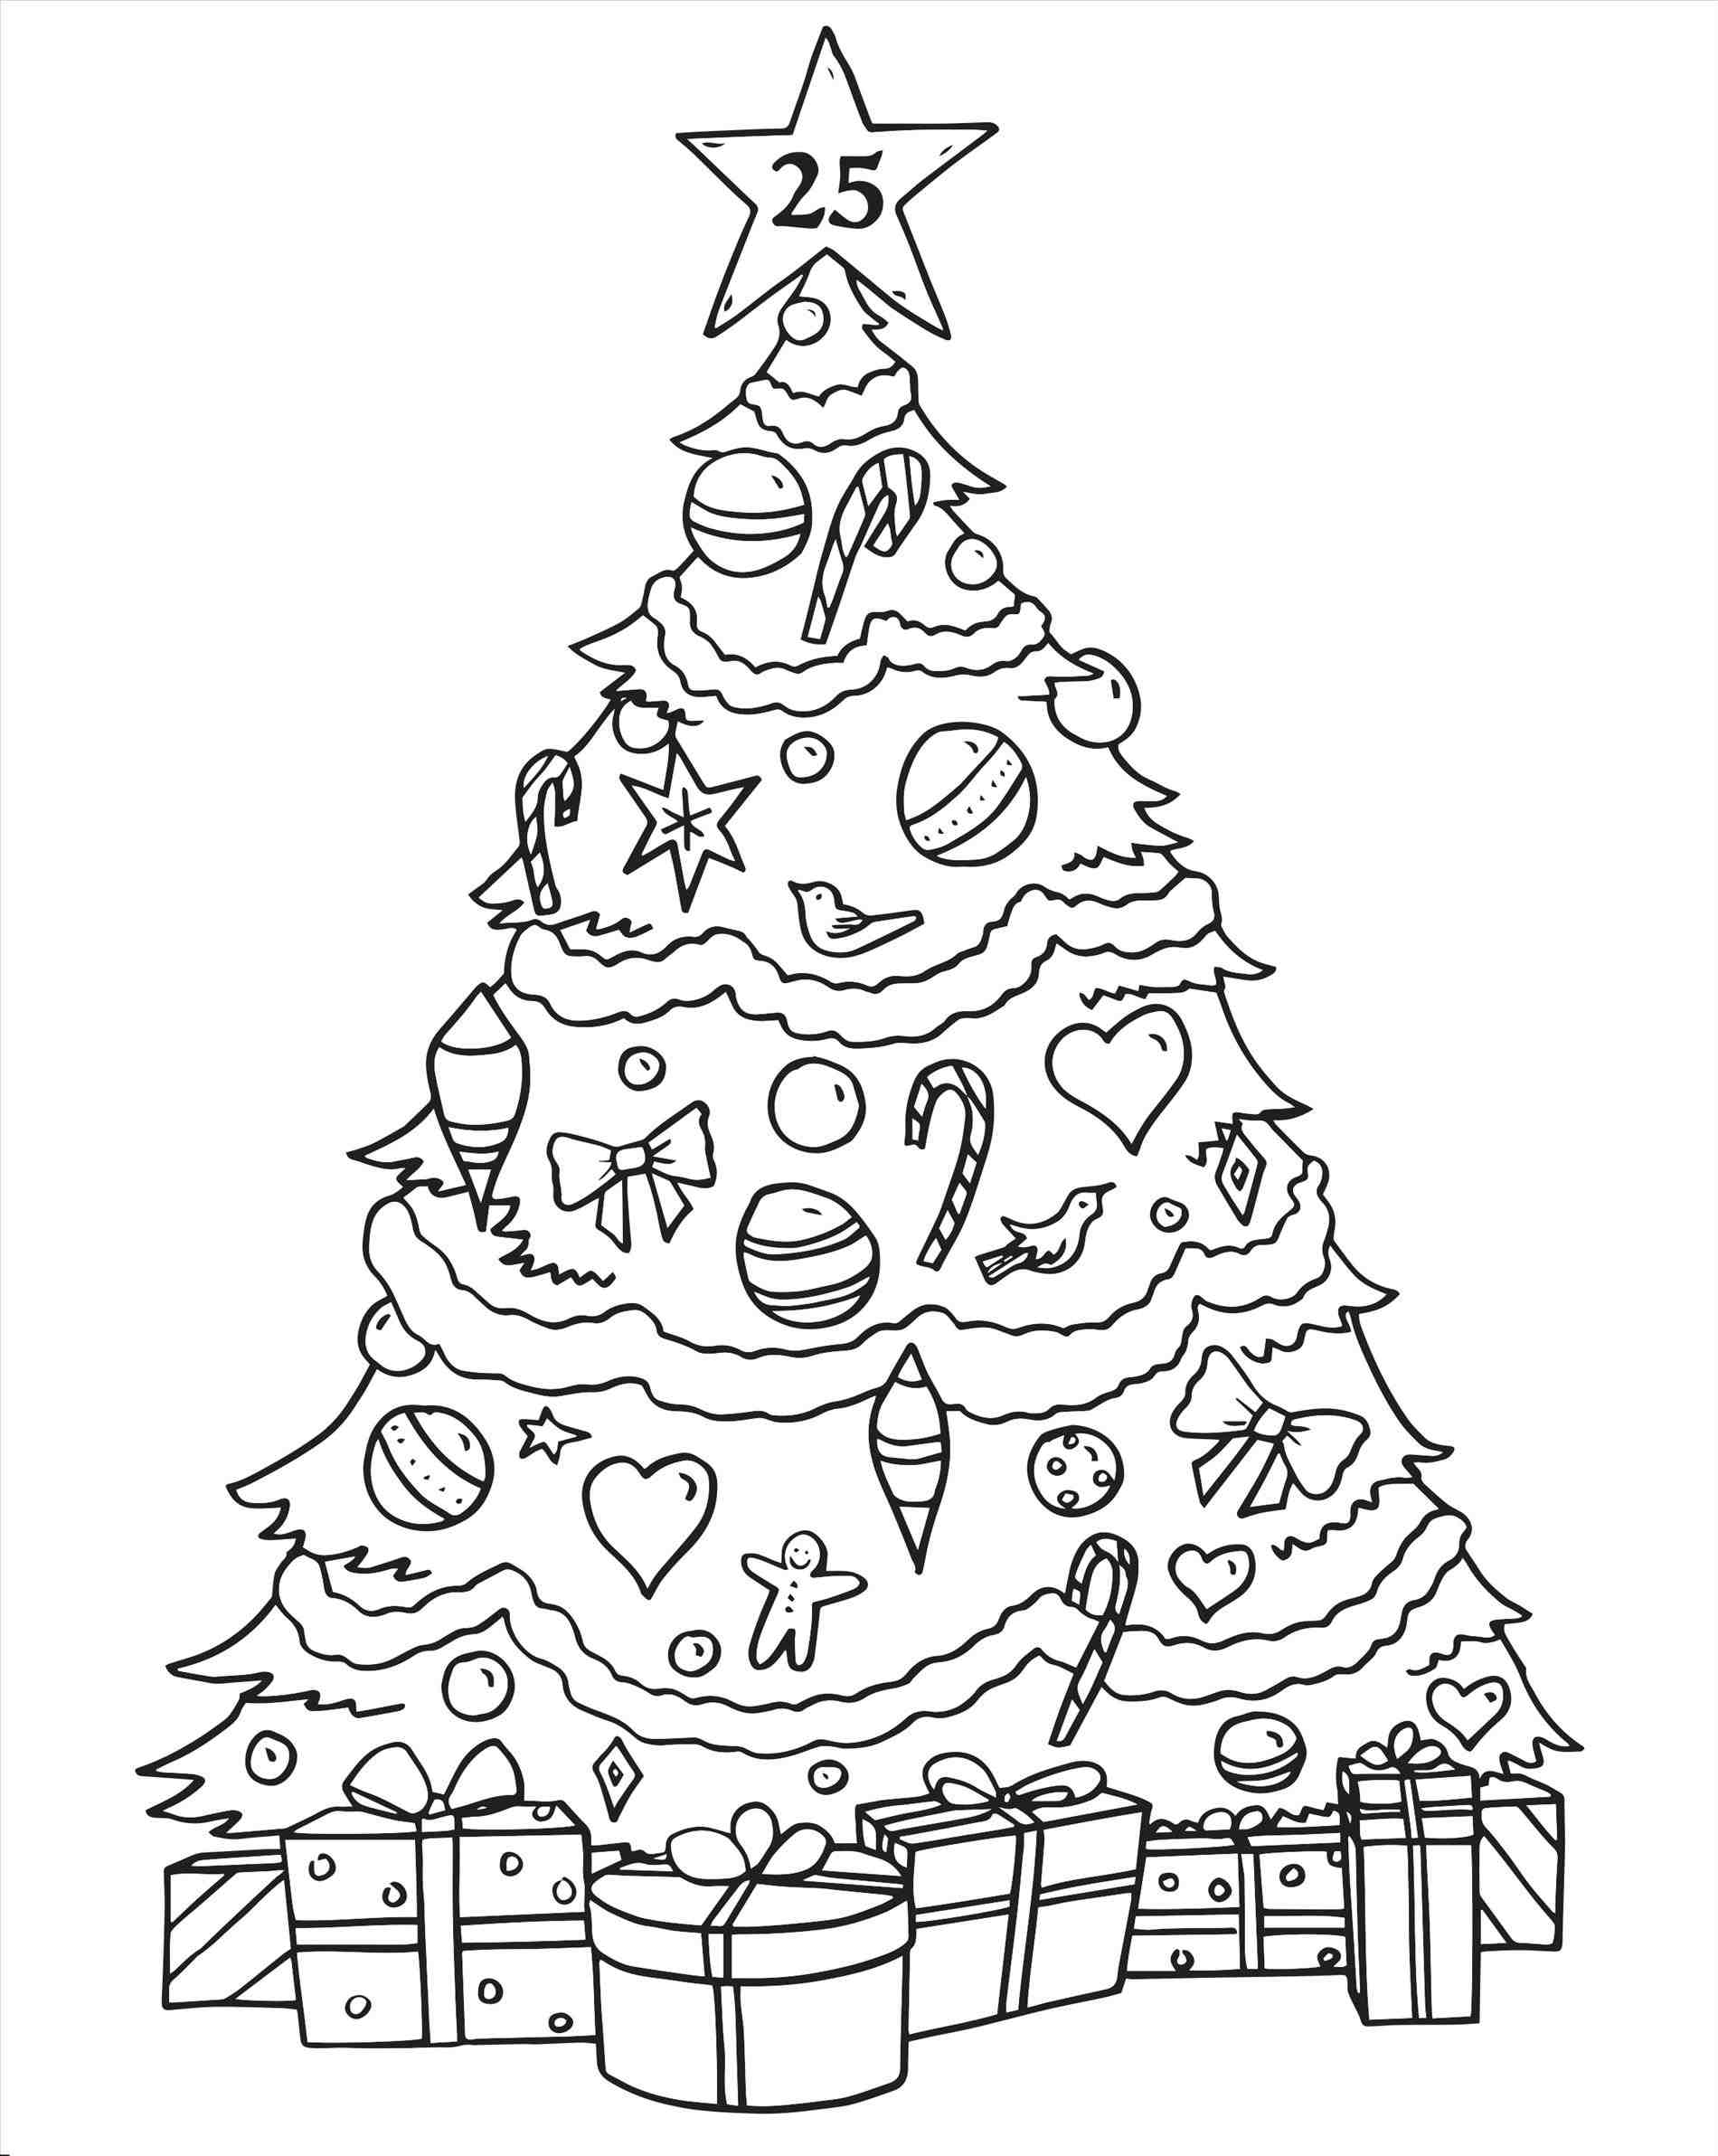 This is a picture of Impeccable Coloring Pages Of Christmas Trees